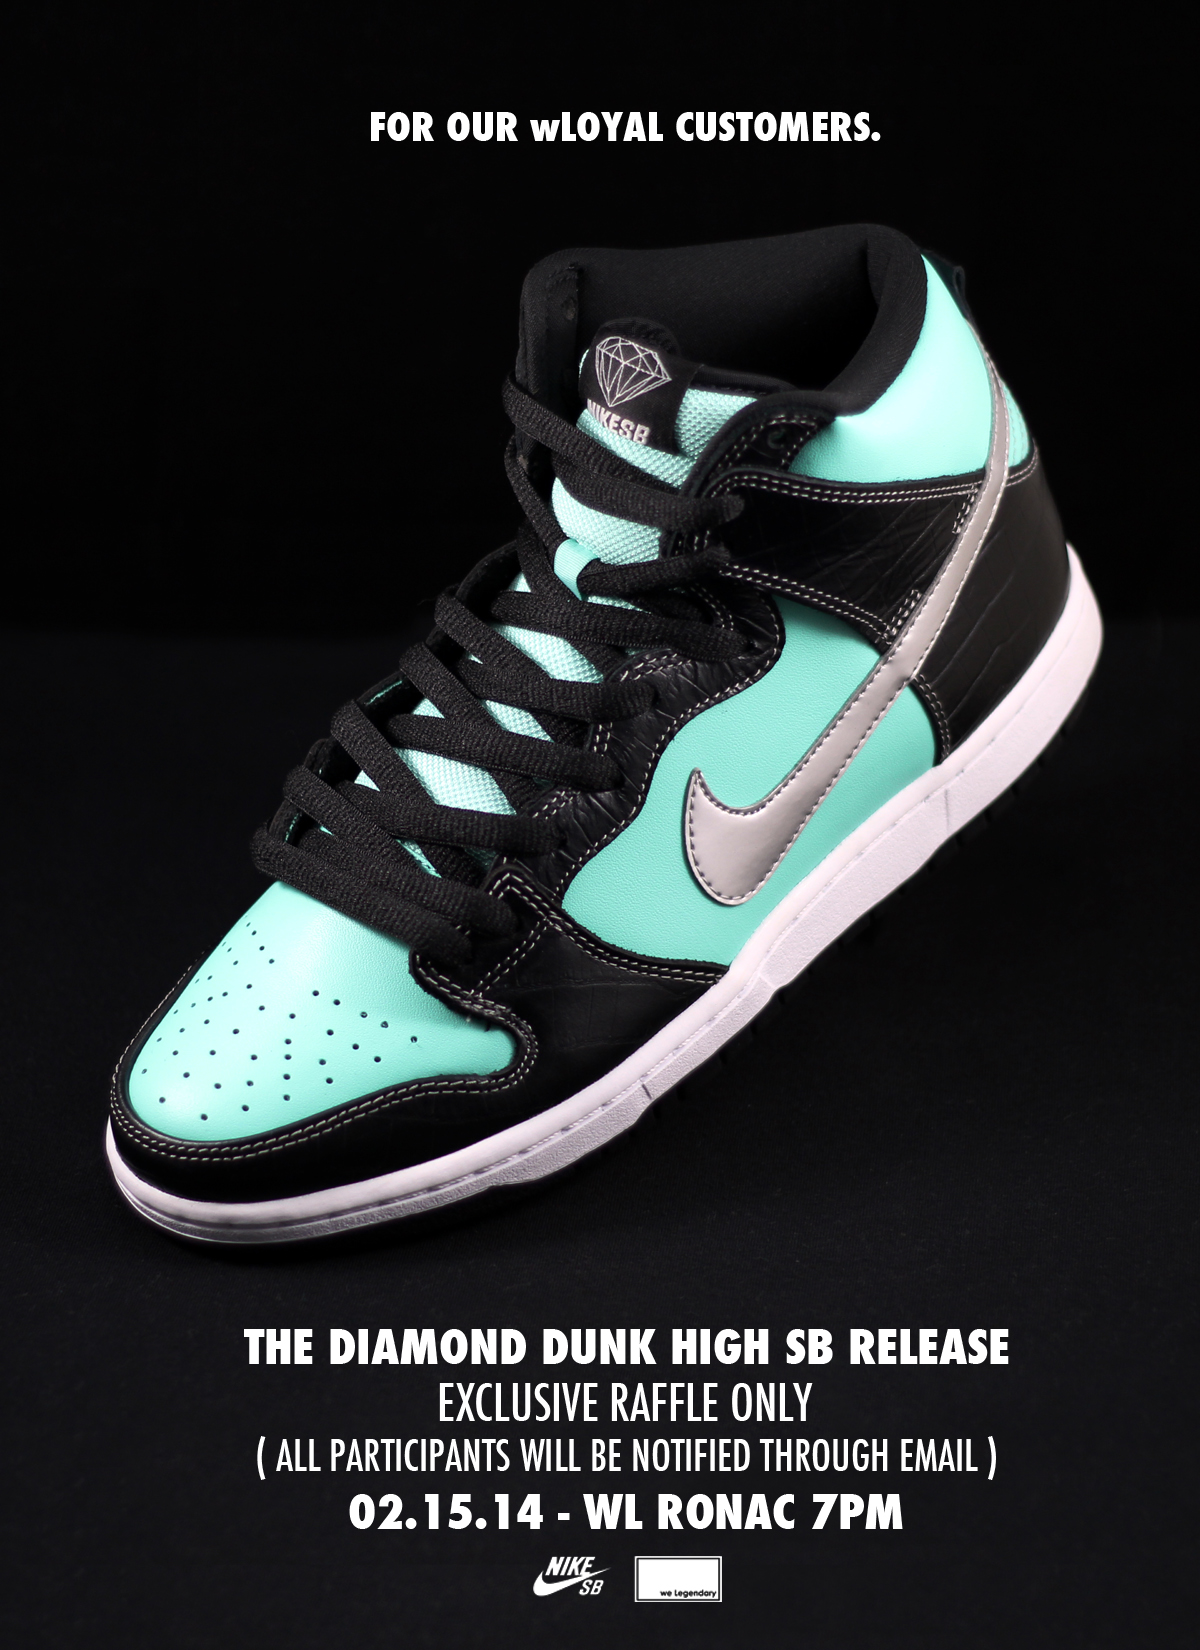 new arrival 2474a 97399 weLegendary to release the Nike Diamond Dunk High SB ...